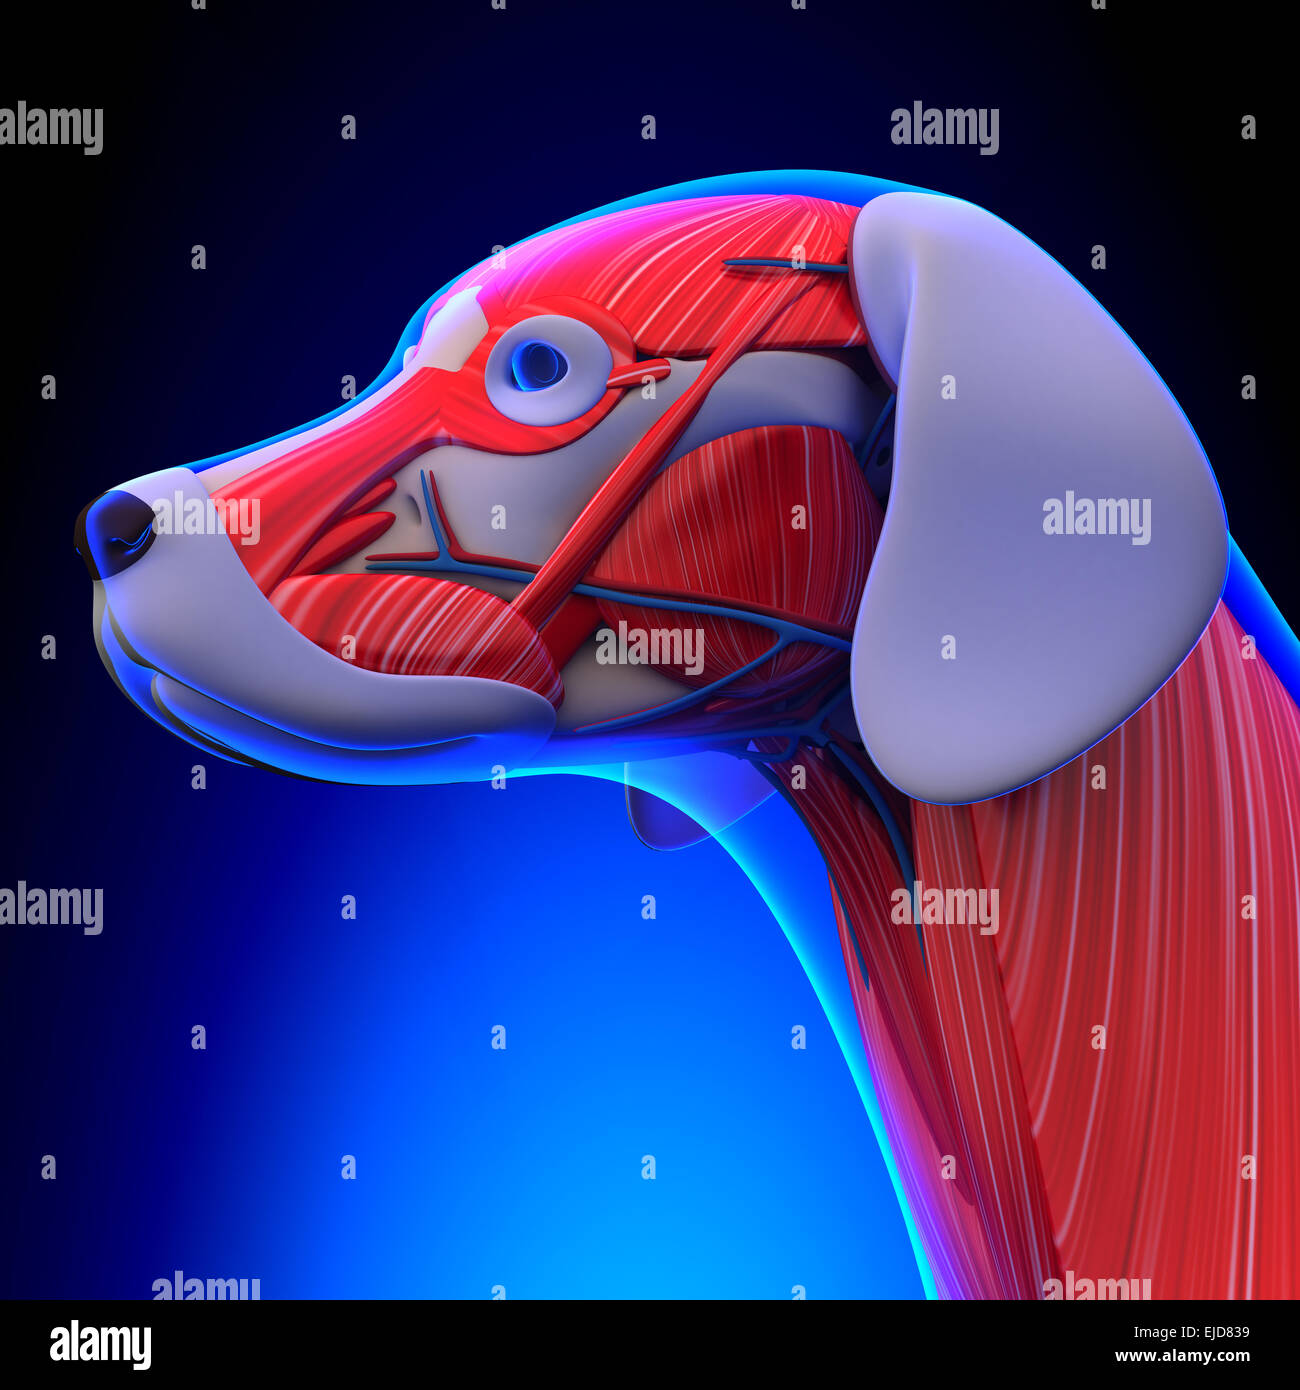 Dog Muscles Anatomy - Anatomy of a Male Dog Muscles Stock Photo ...